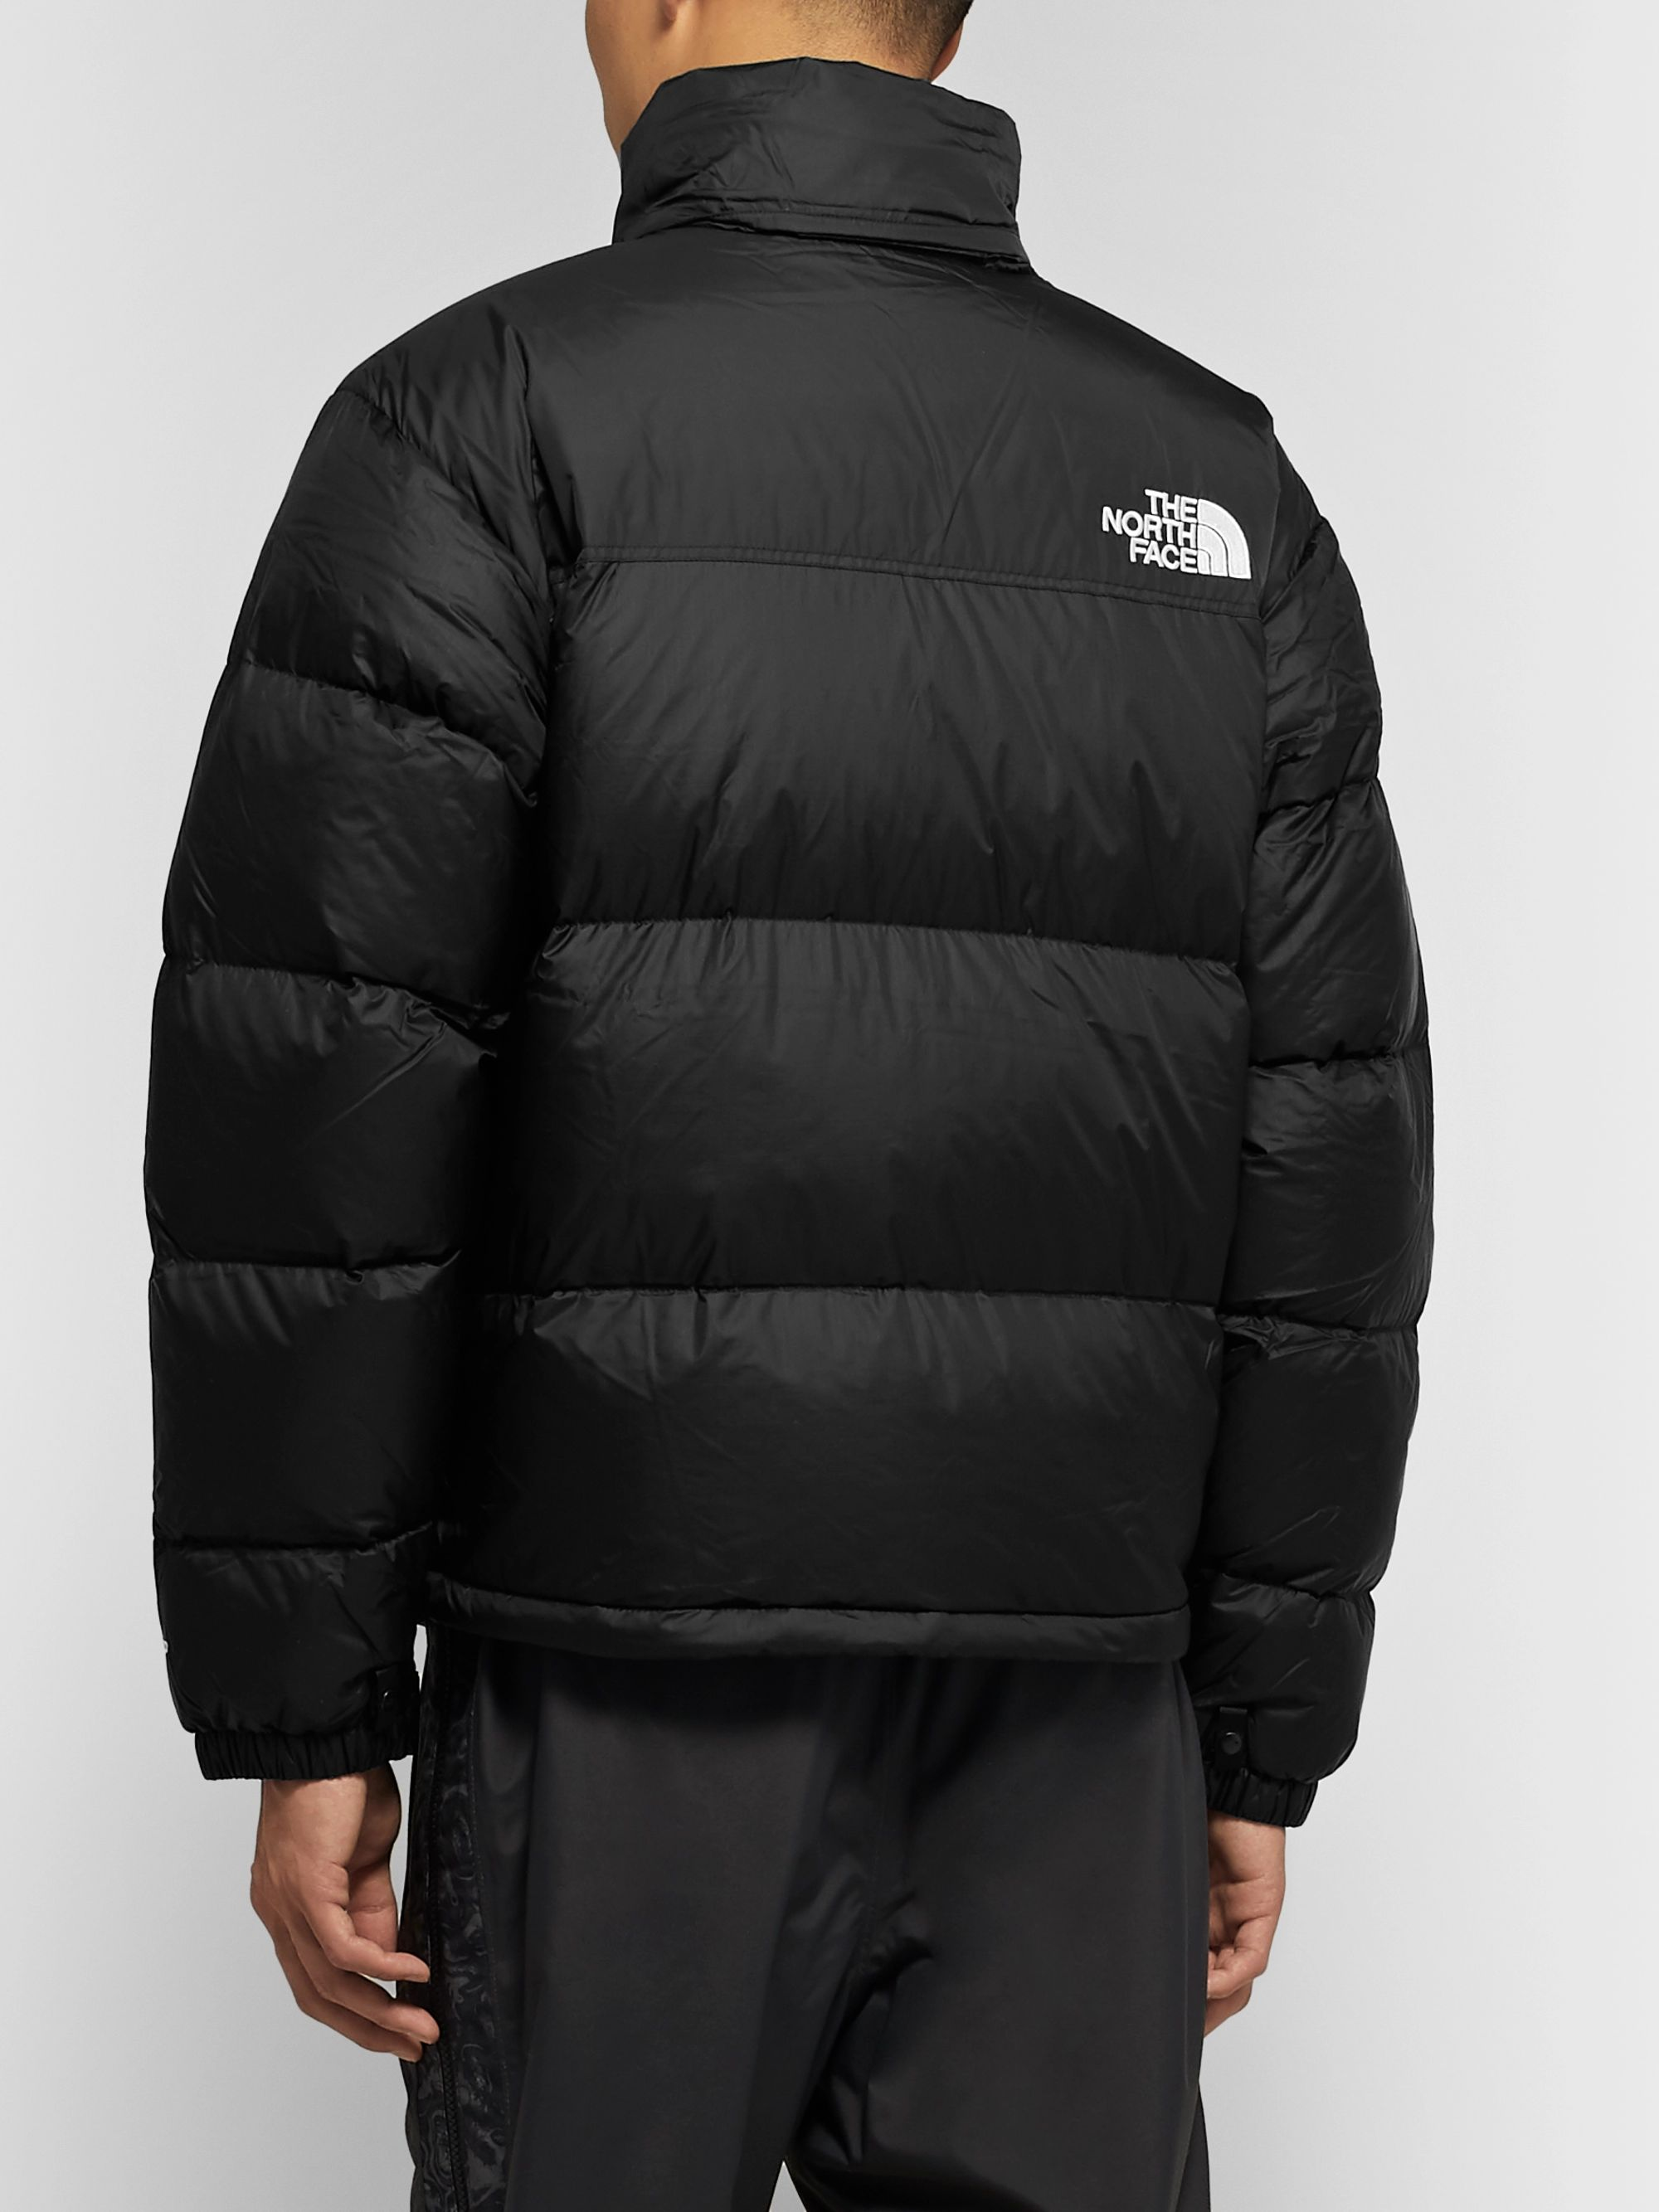 The North Face 1996 Nuptse Quilted Nylon-Ripstop Down Jacket